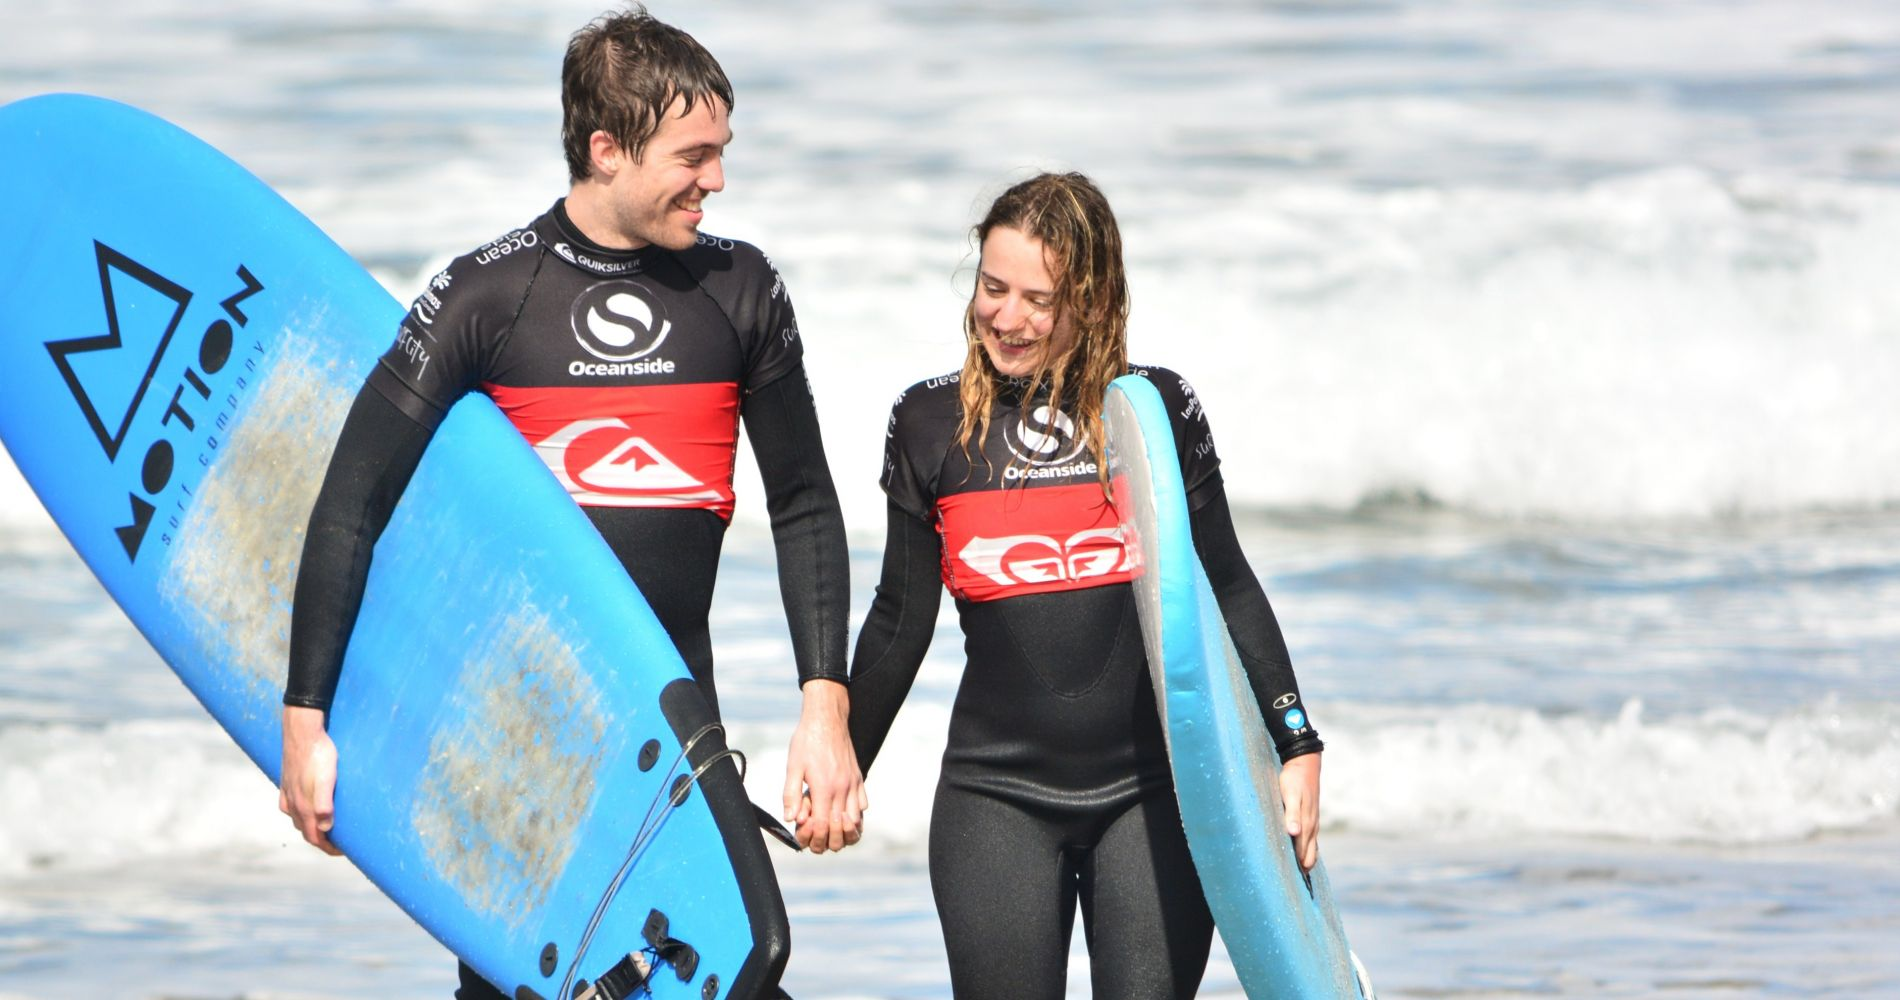 Exciting Surfing Lesson for Couples in Gran Canaria Tinggly Experience Gift